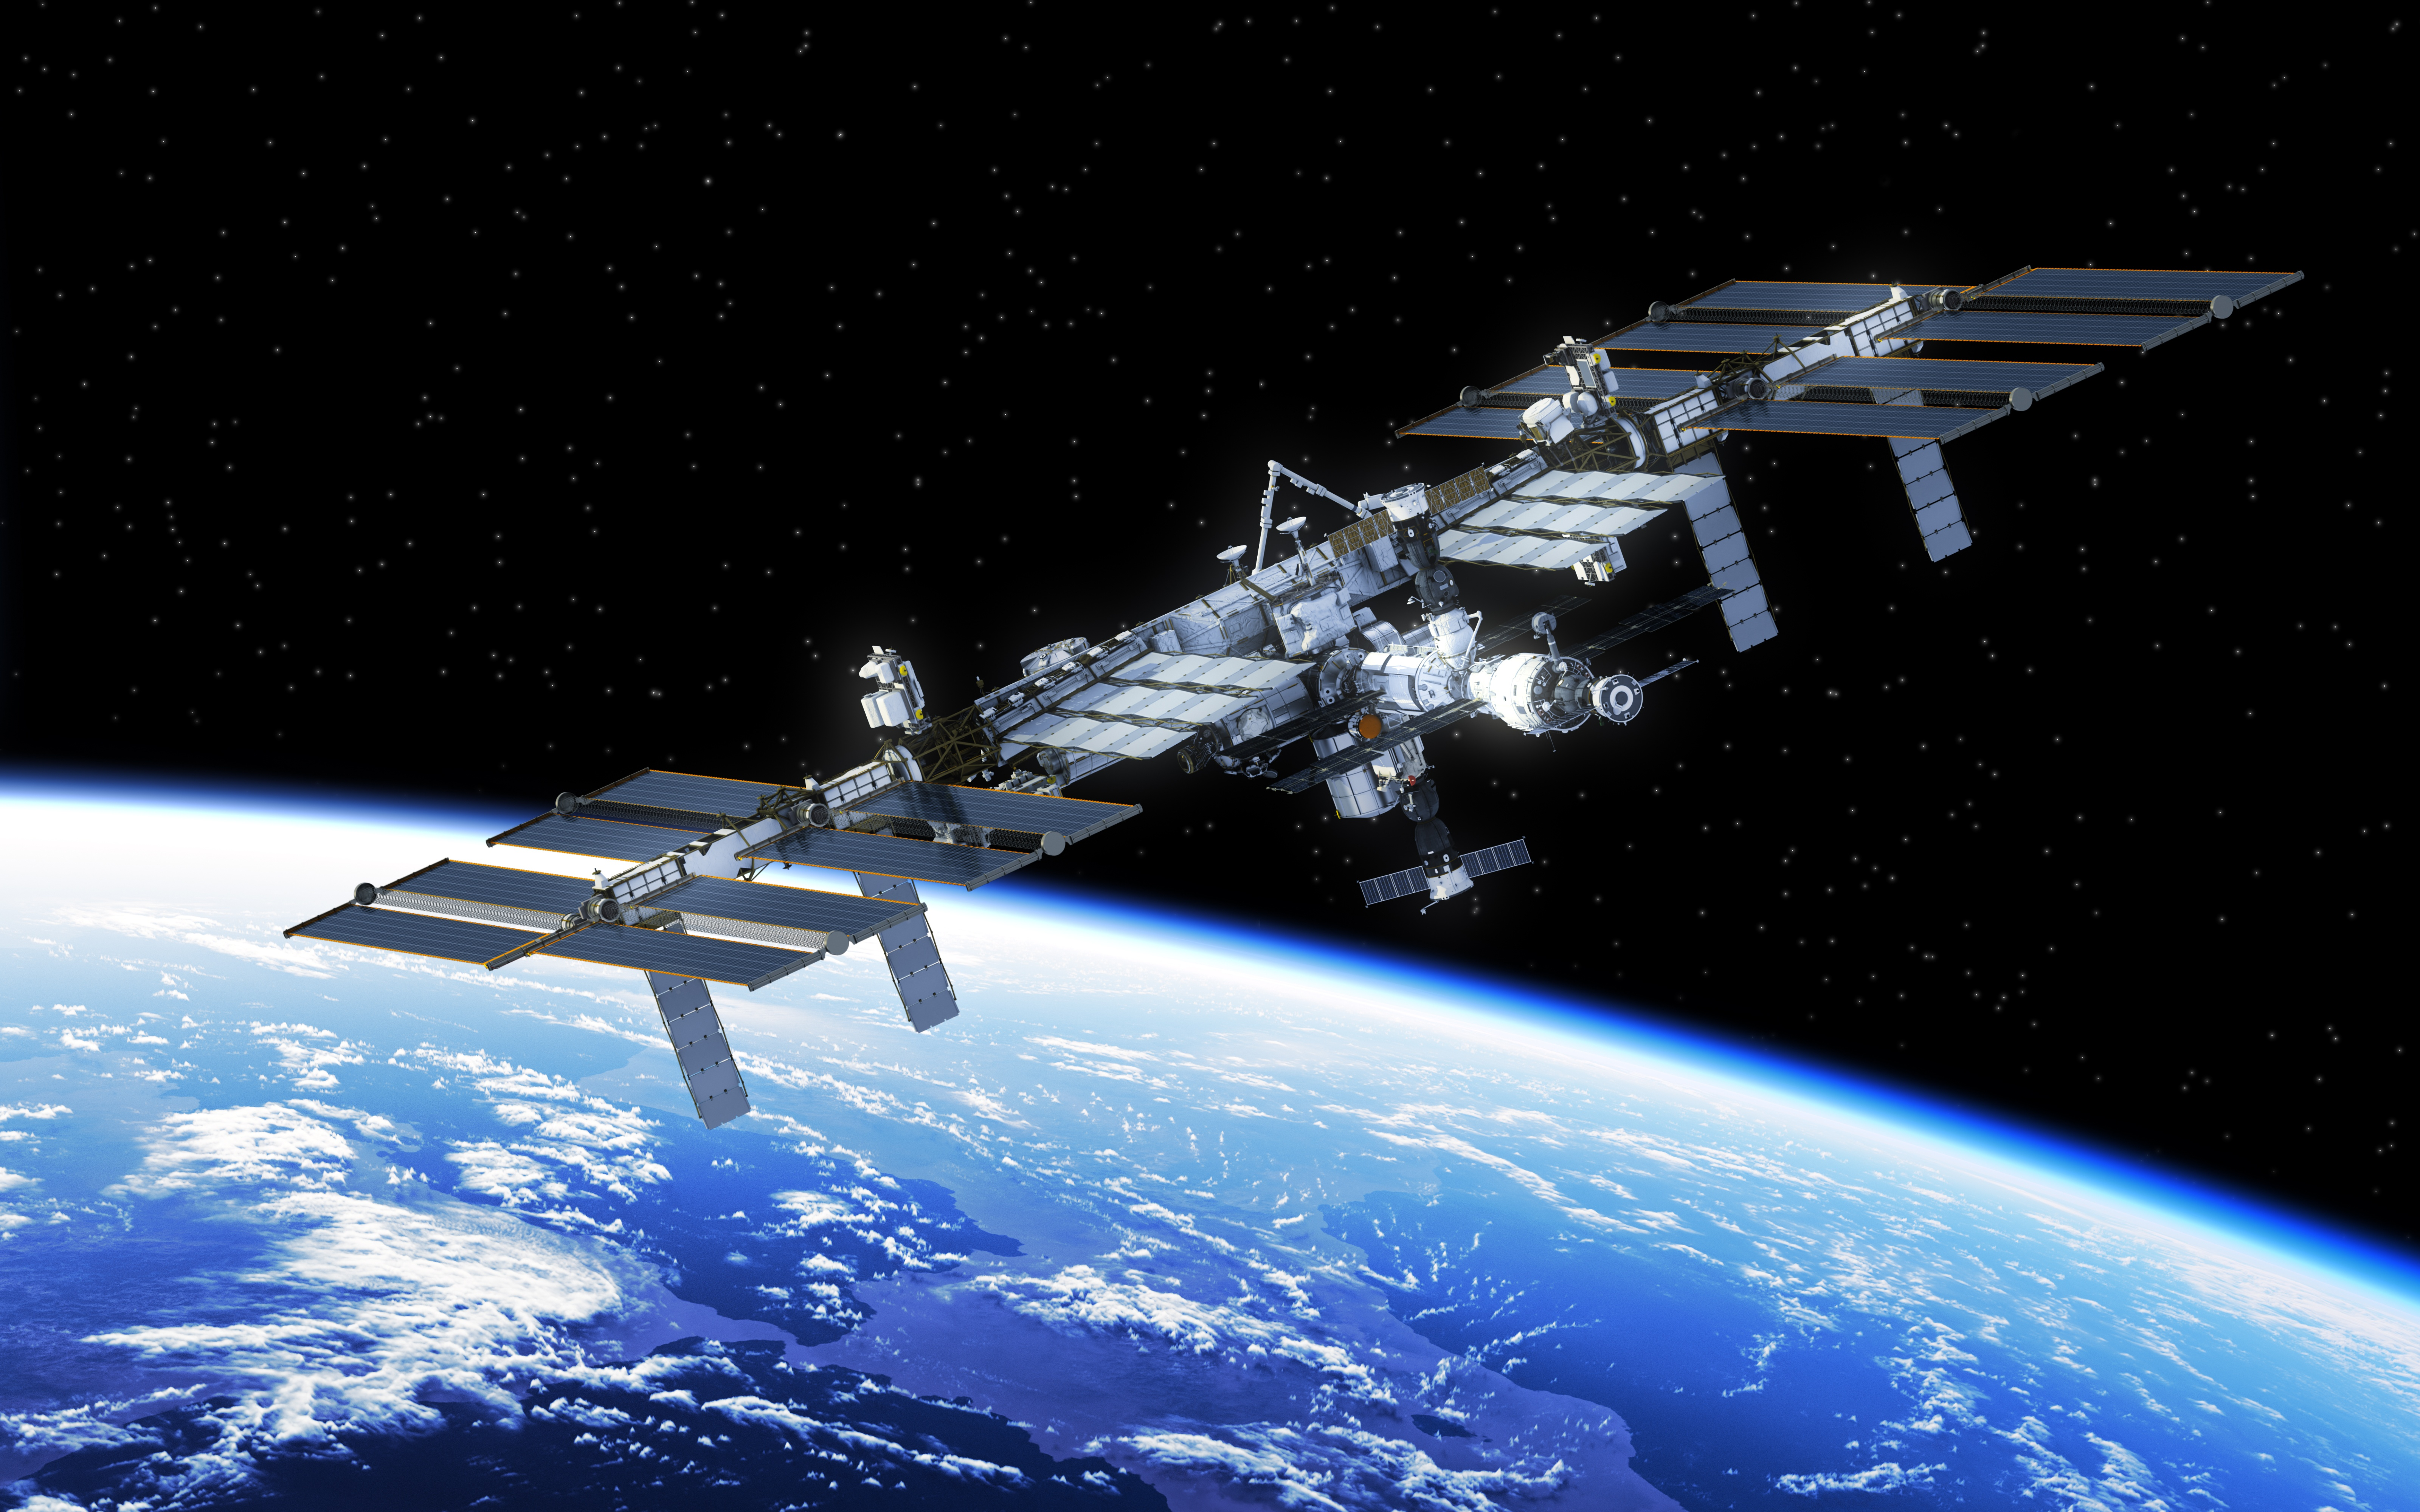 The International Space Station.